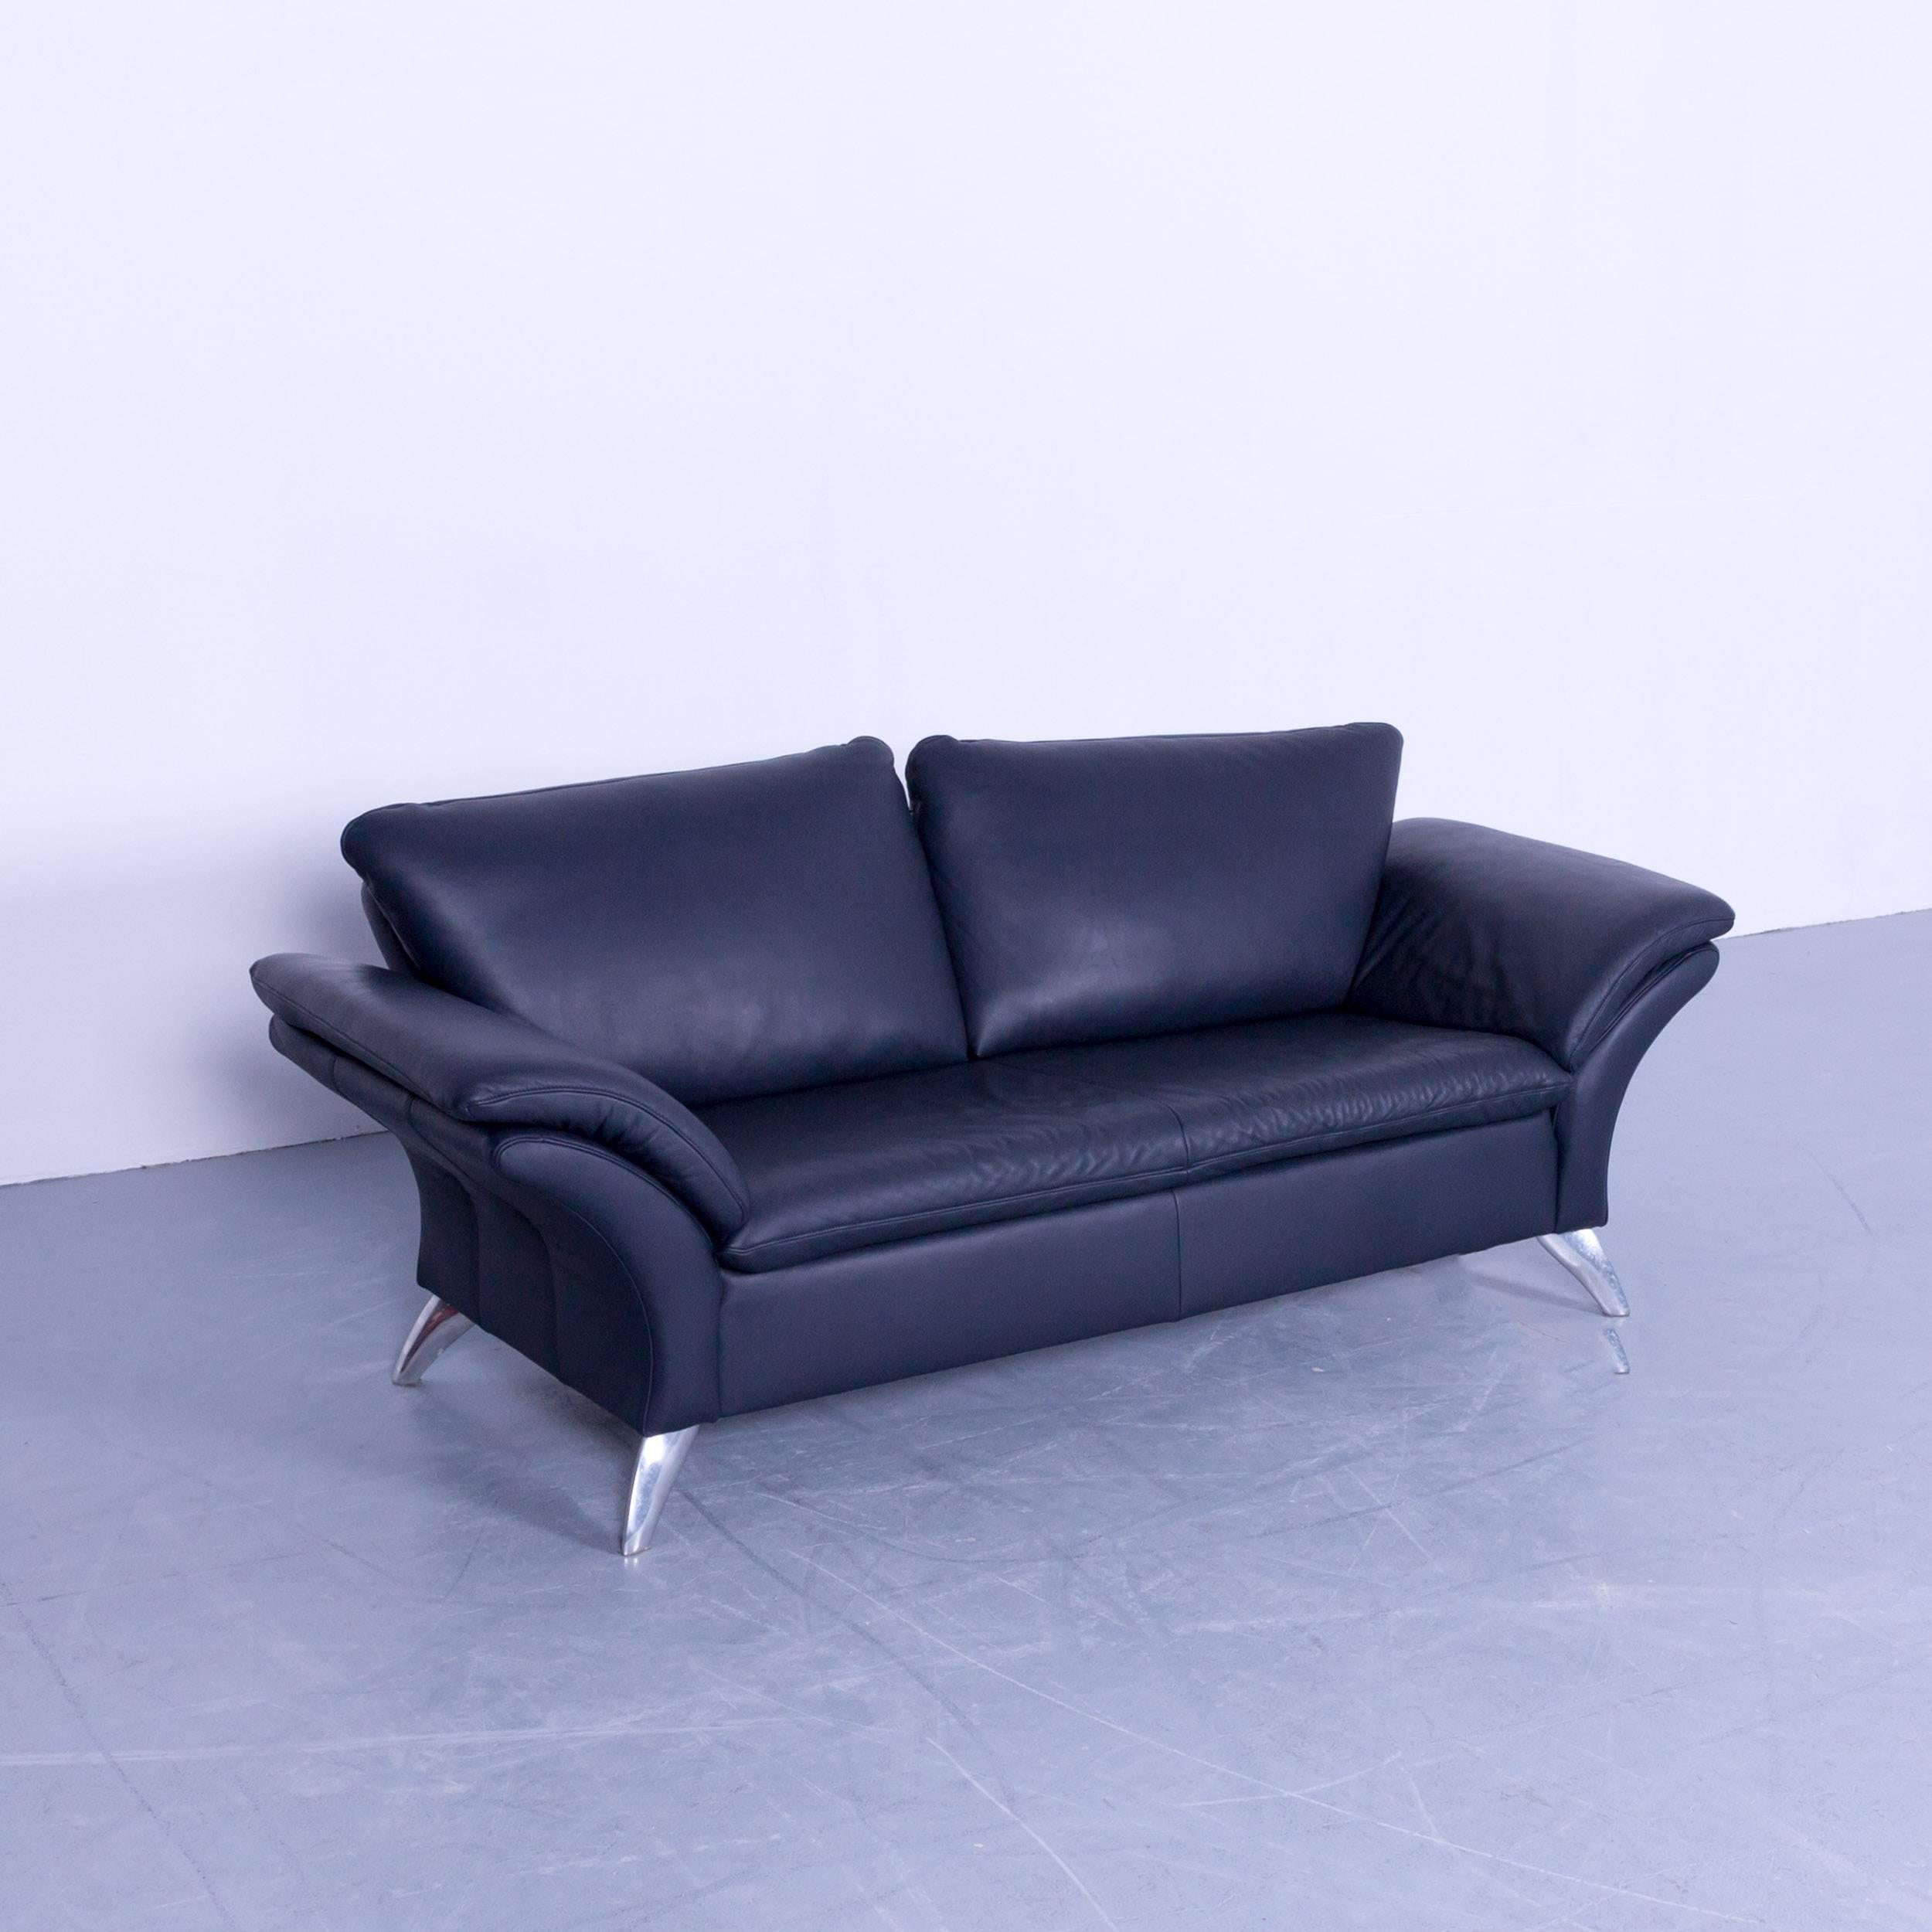 Erfreut moderne sofa garnituren ideen die kinderzimmer design ideen for Sofa garnitur